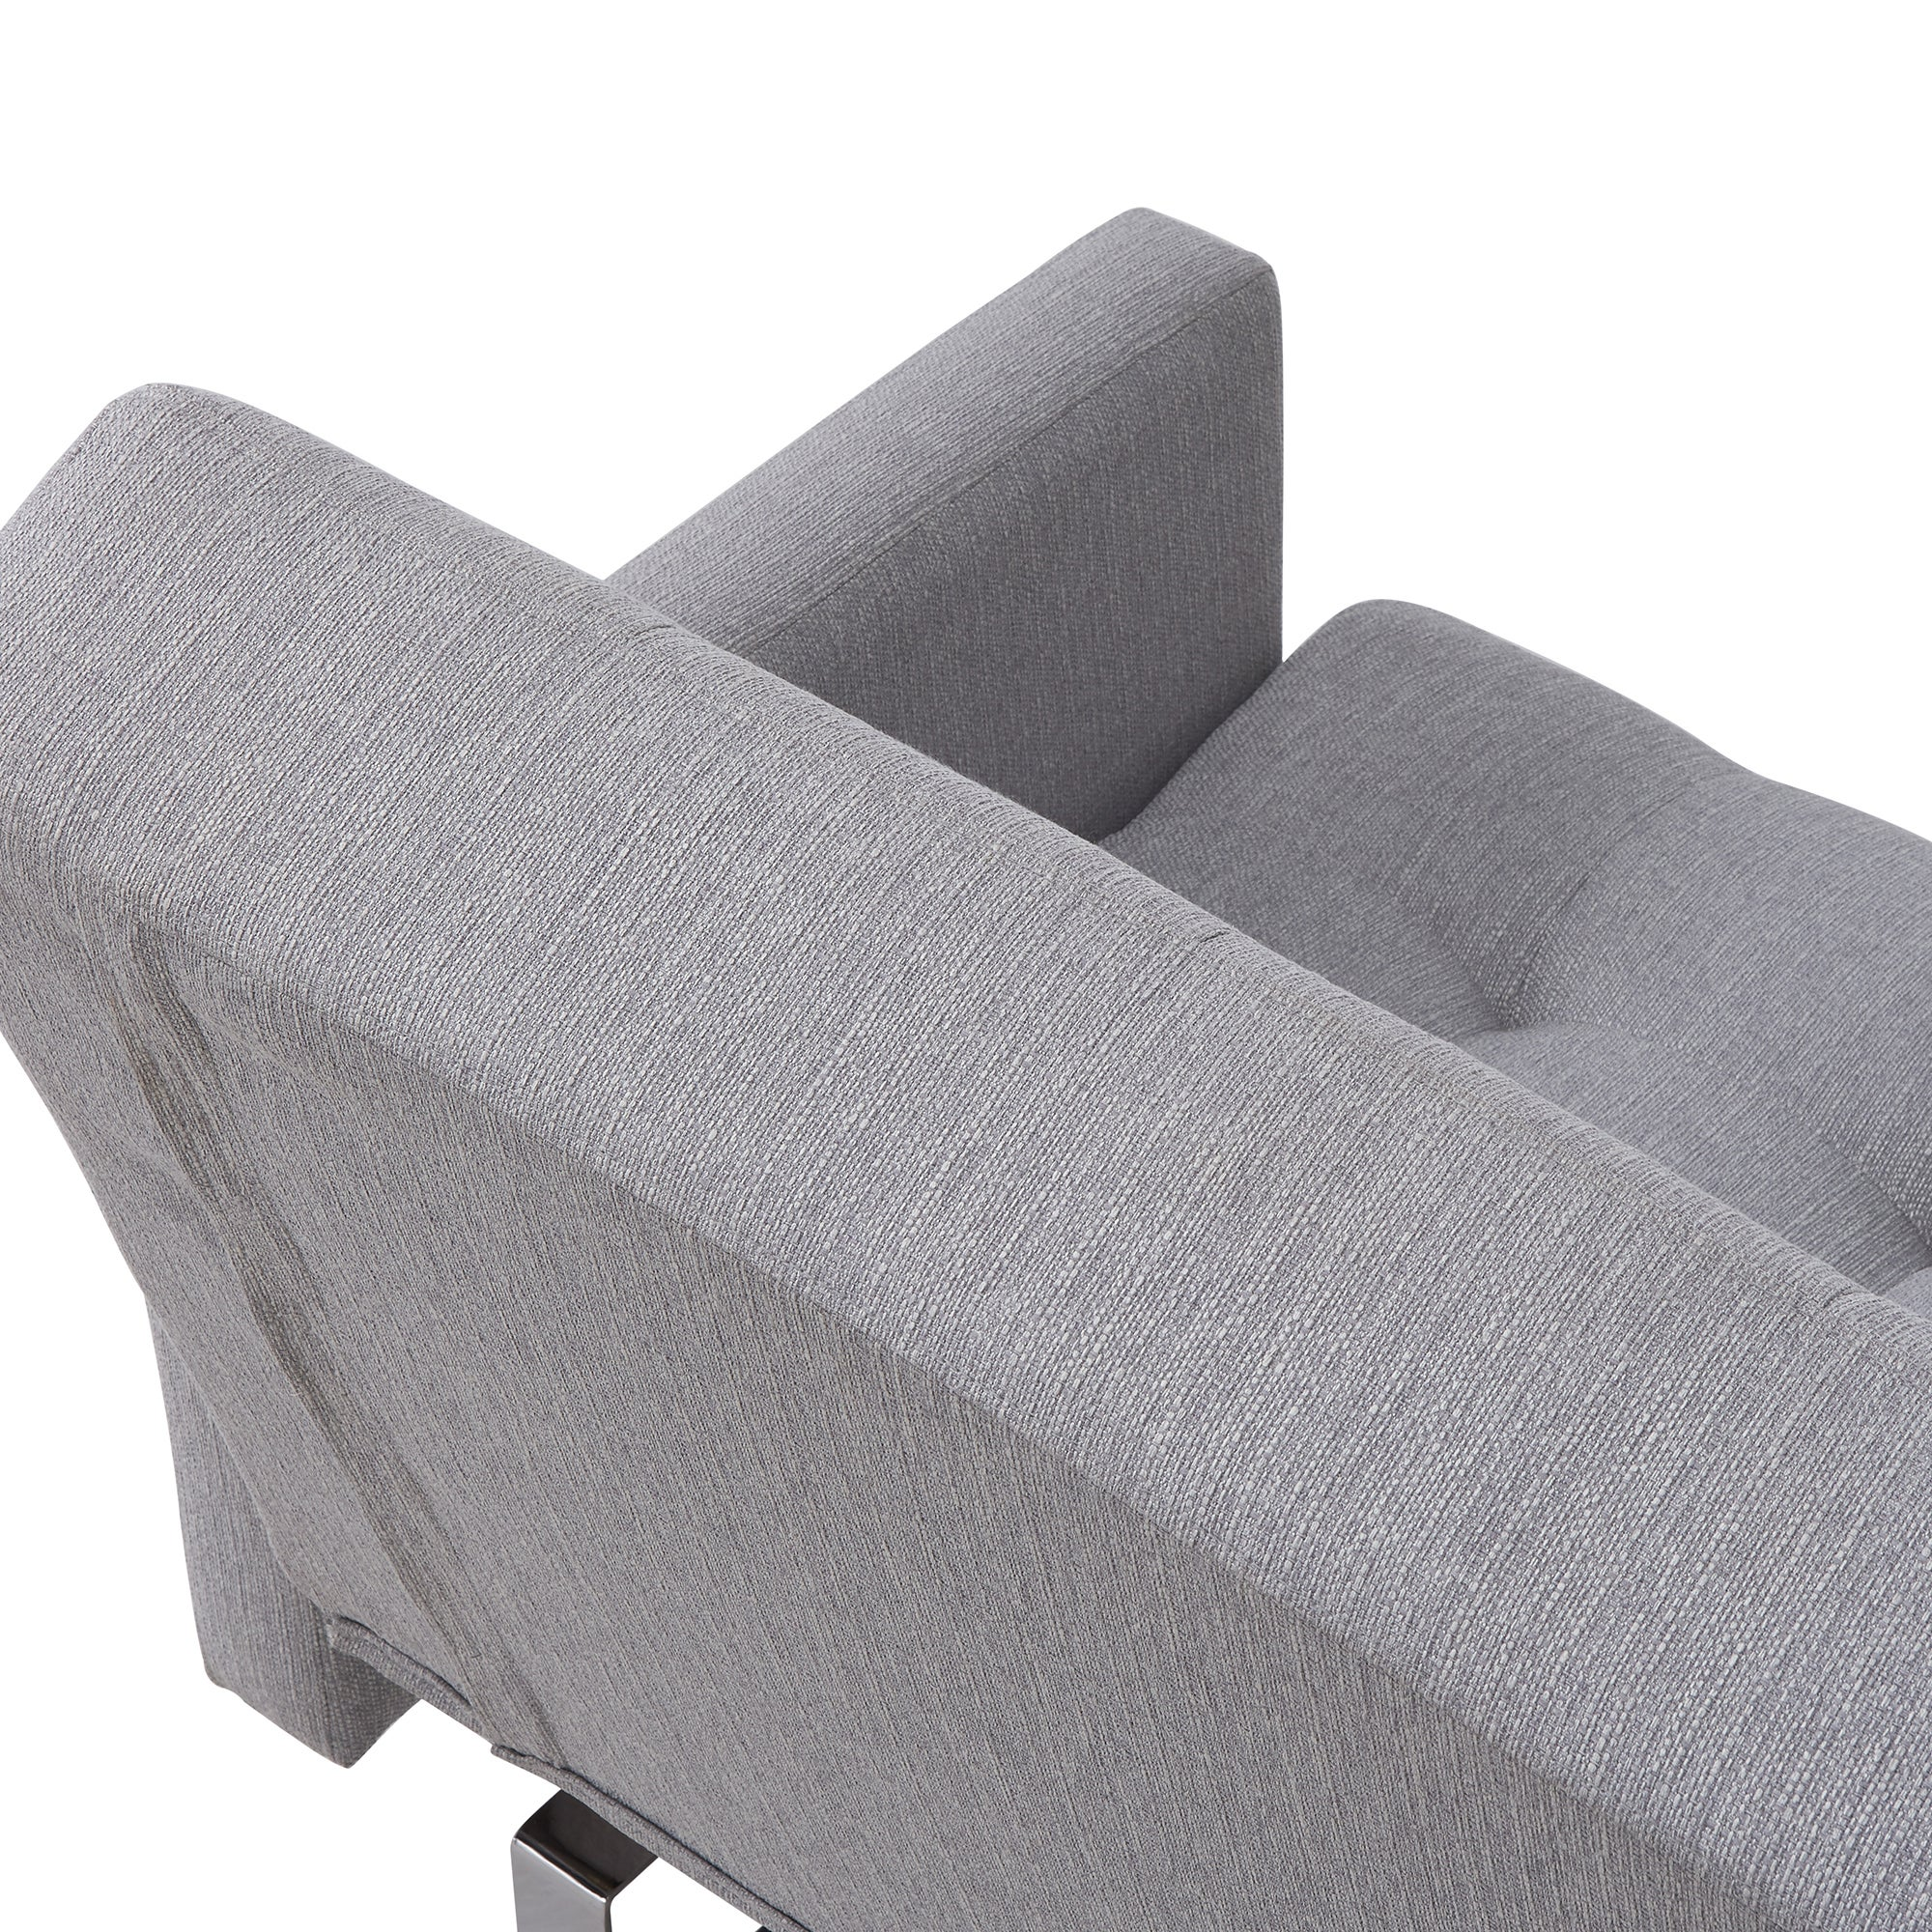 Shop Handy Living Springfield Dove Grey Linen Click Clack Futon Sofa Bed    On Sale   Free Shipping Today   Overstock.com   16747693